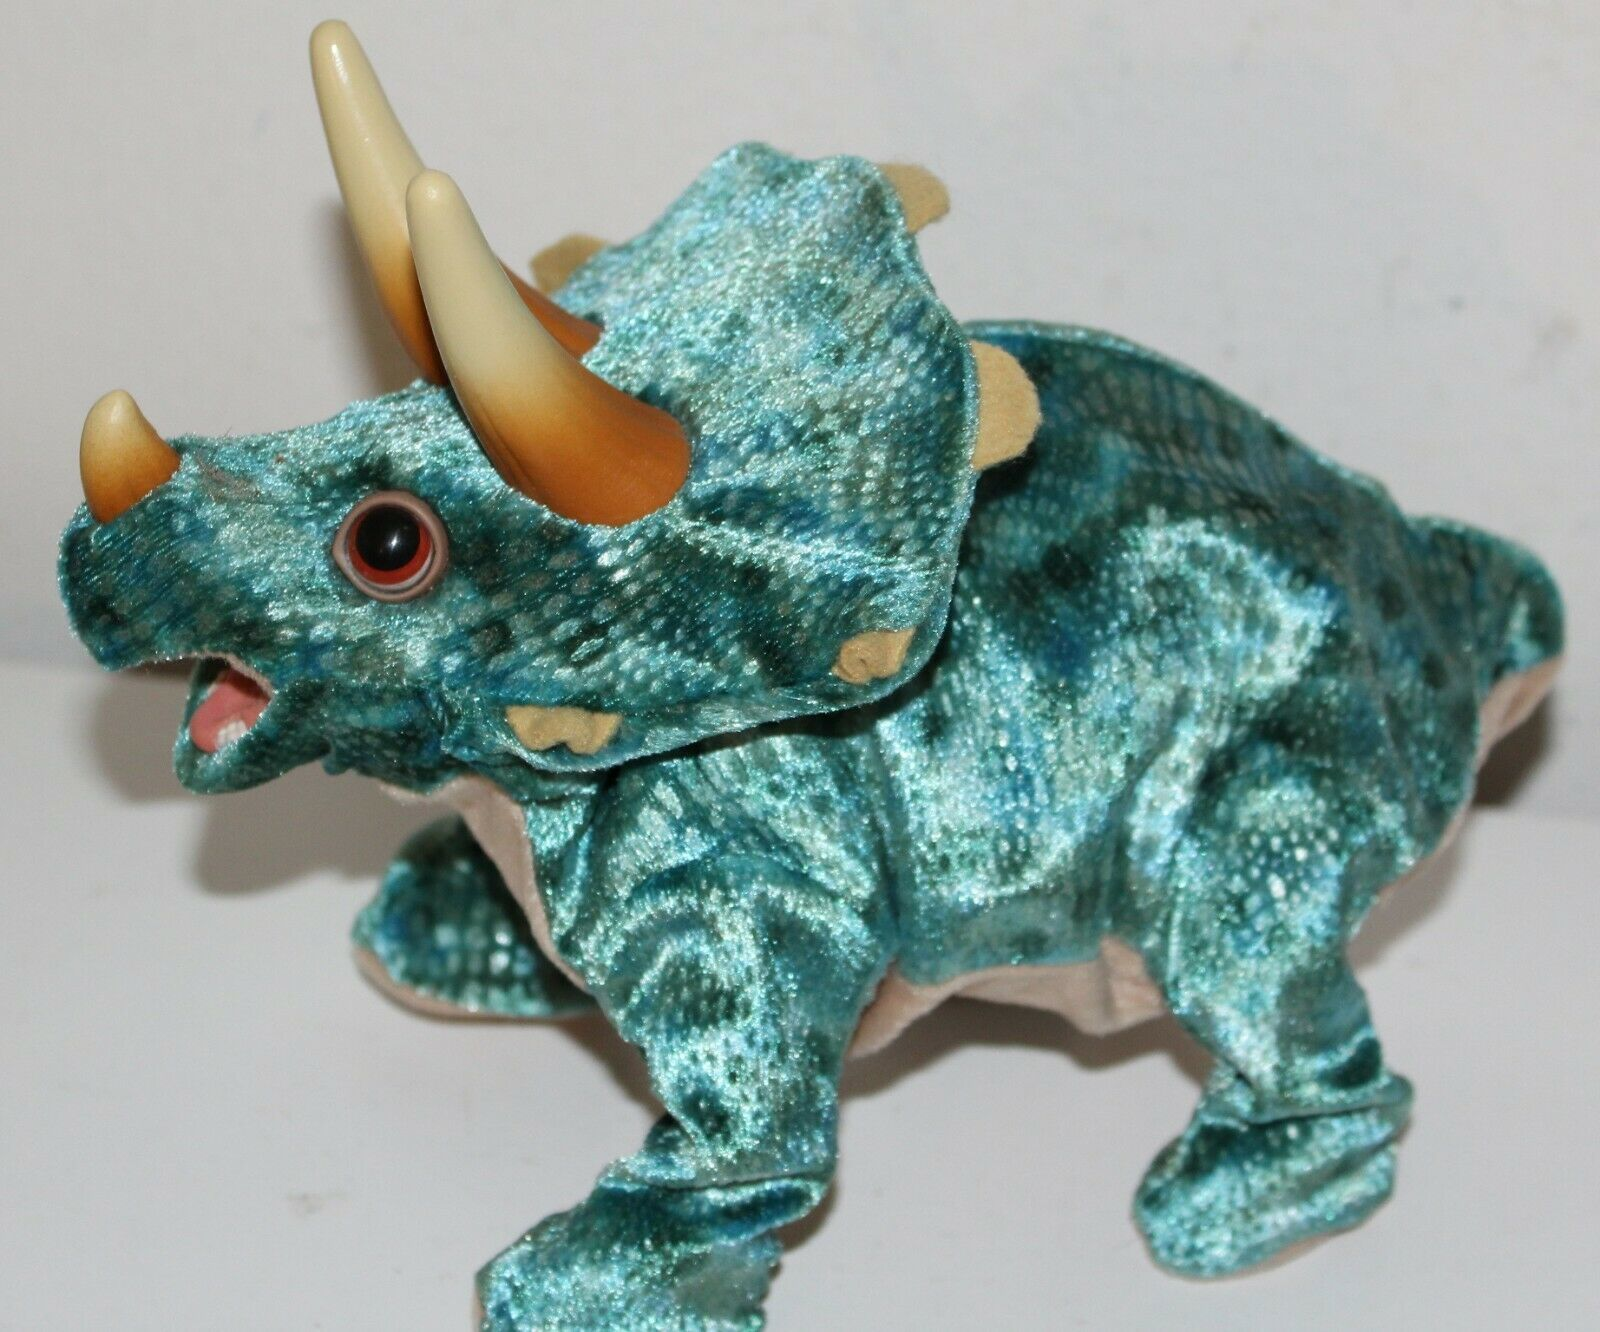 Dinosaur Triceratops Hasbro Playskool 2008 Battery Operated Moving, Sounds - $17.81